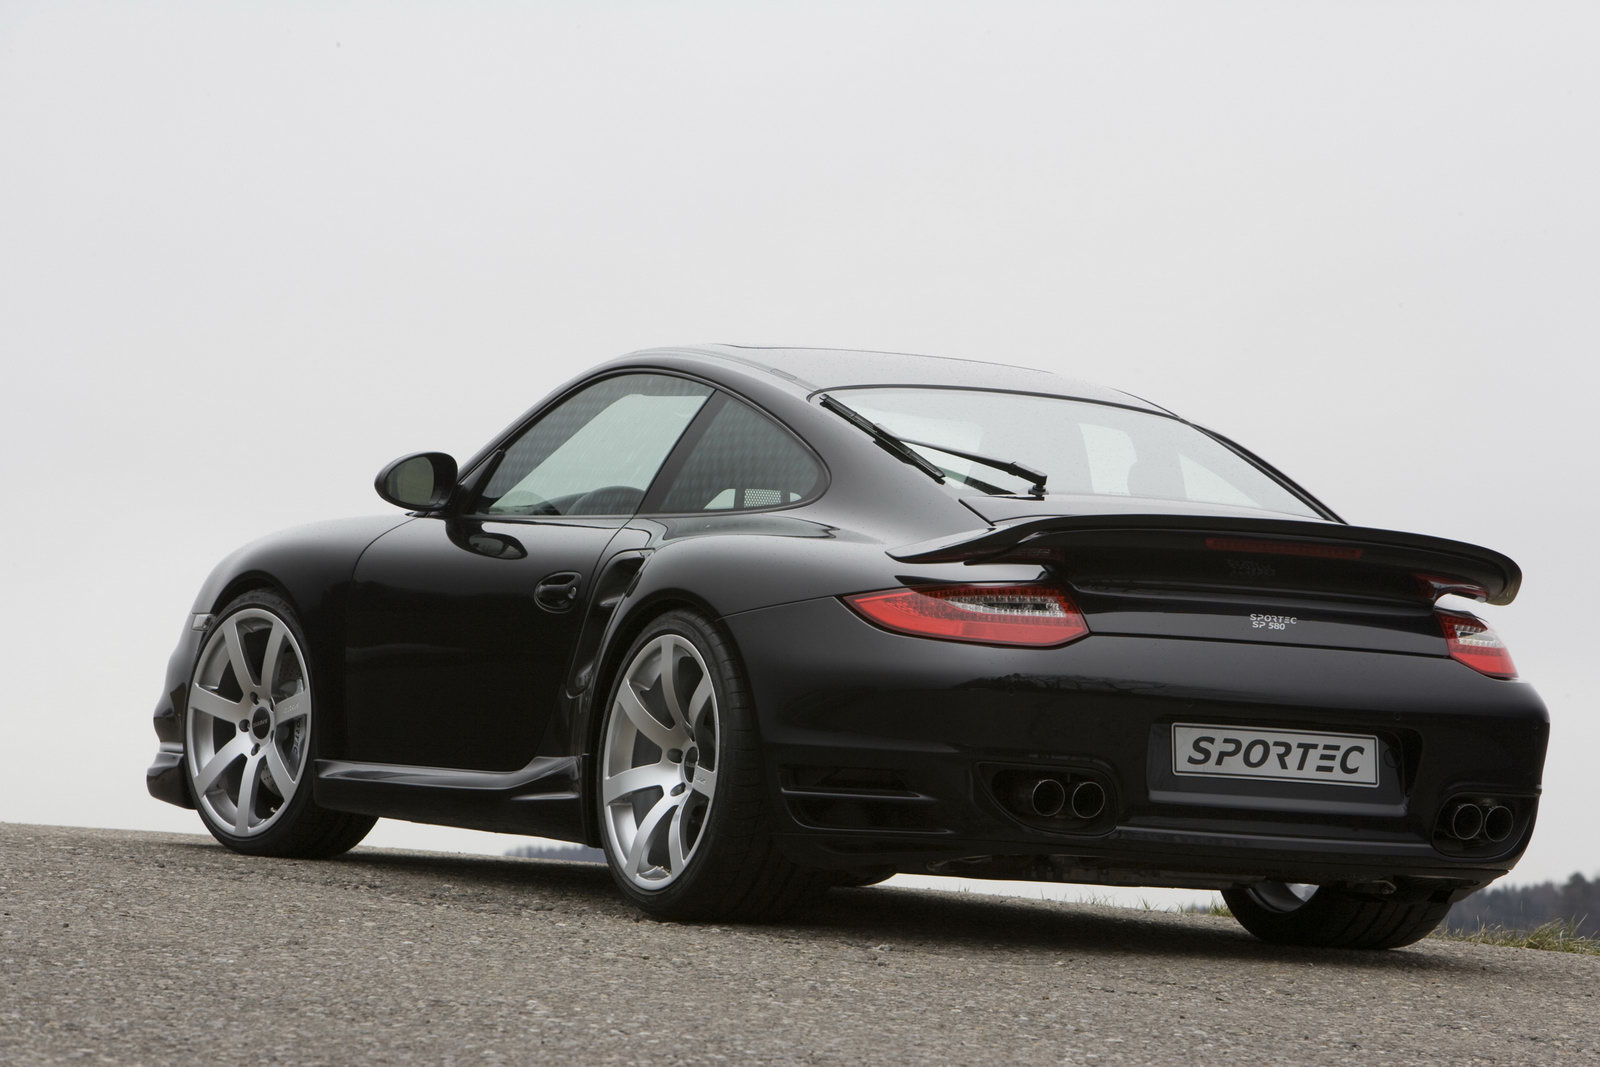 aps sportec powers porsche 911 turbo to 580 horsepower. Black Bedroom Furniture Sets. Home Design Ideas